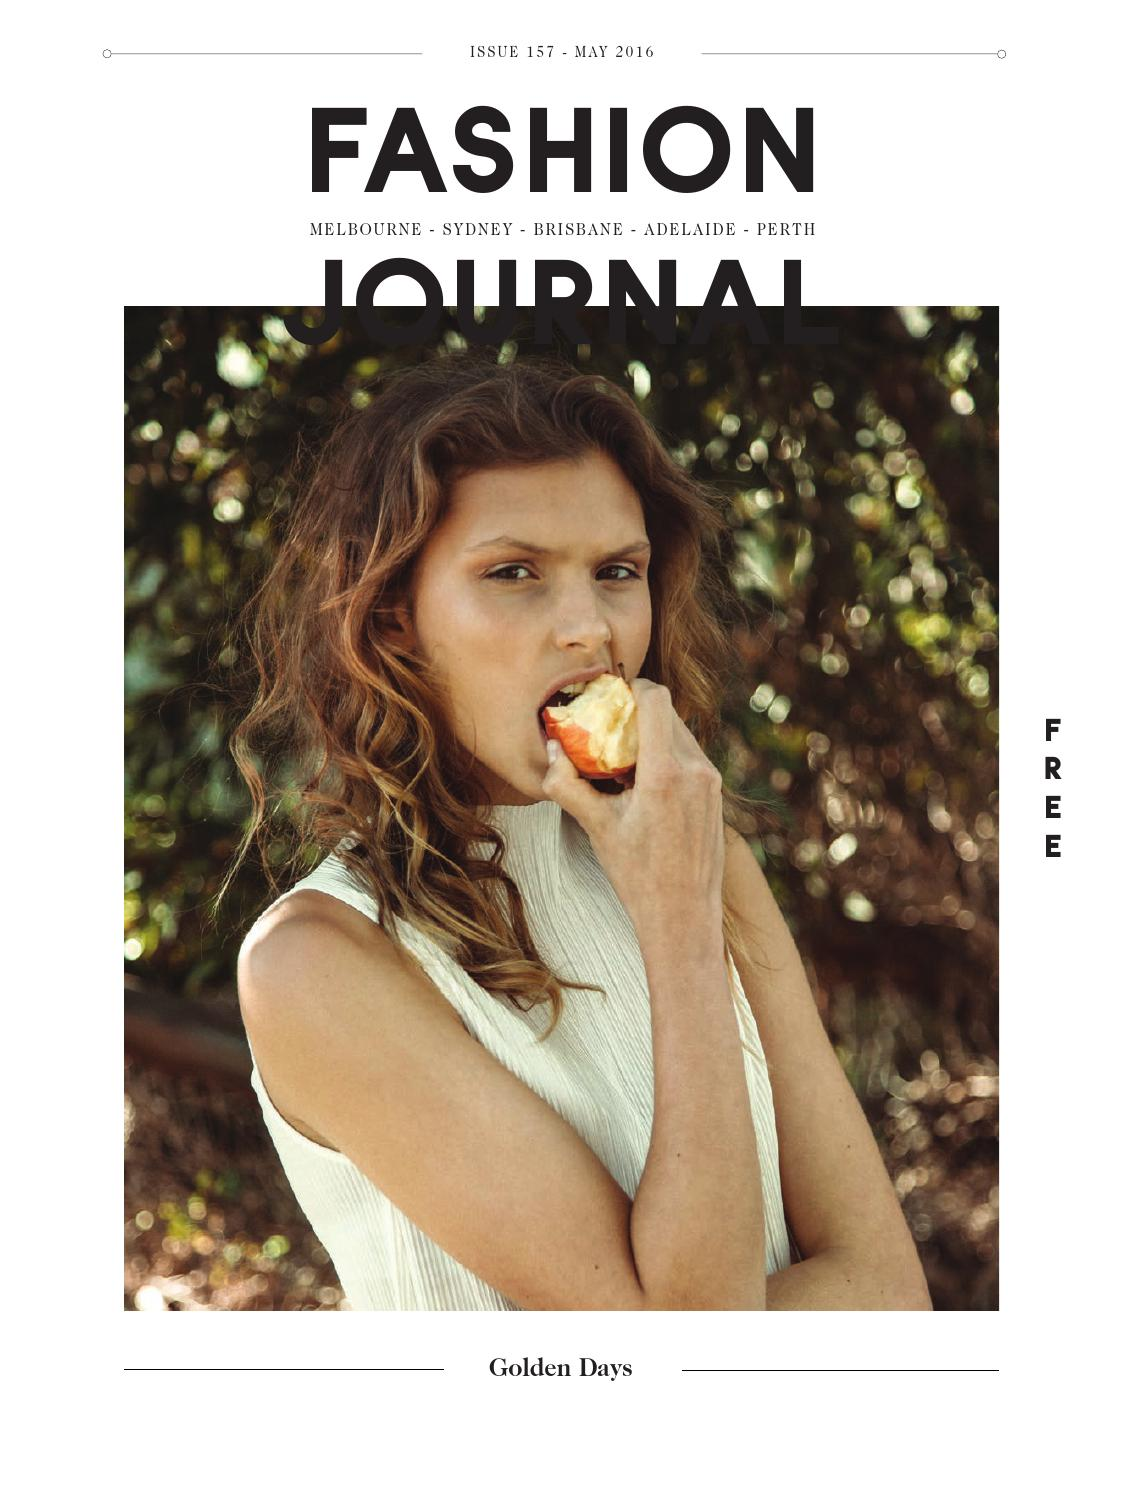 4fe27e3d513a Fashion Journal 157 by Furst Media - issuu